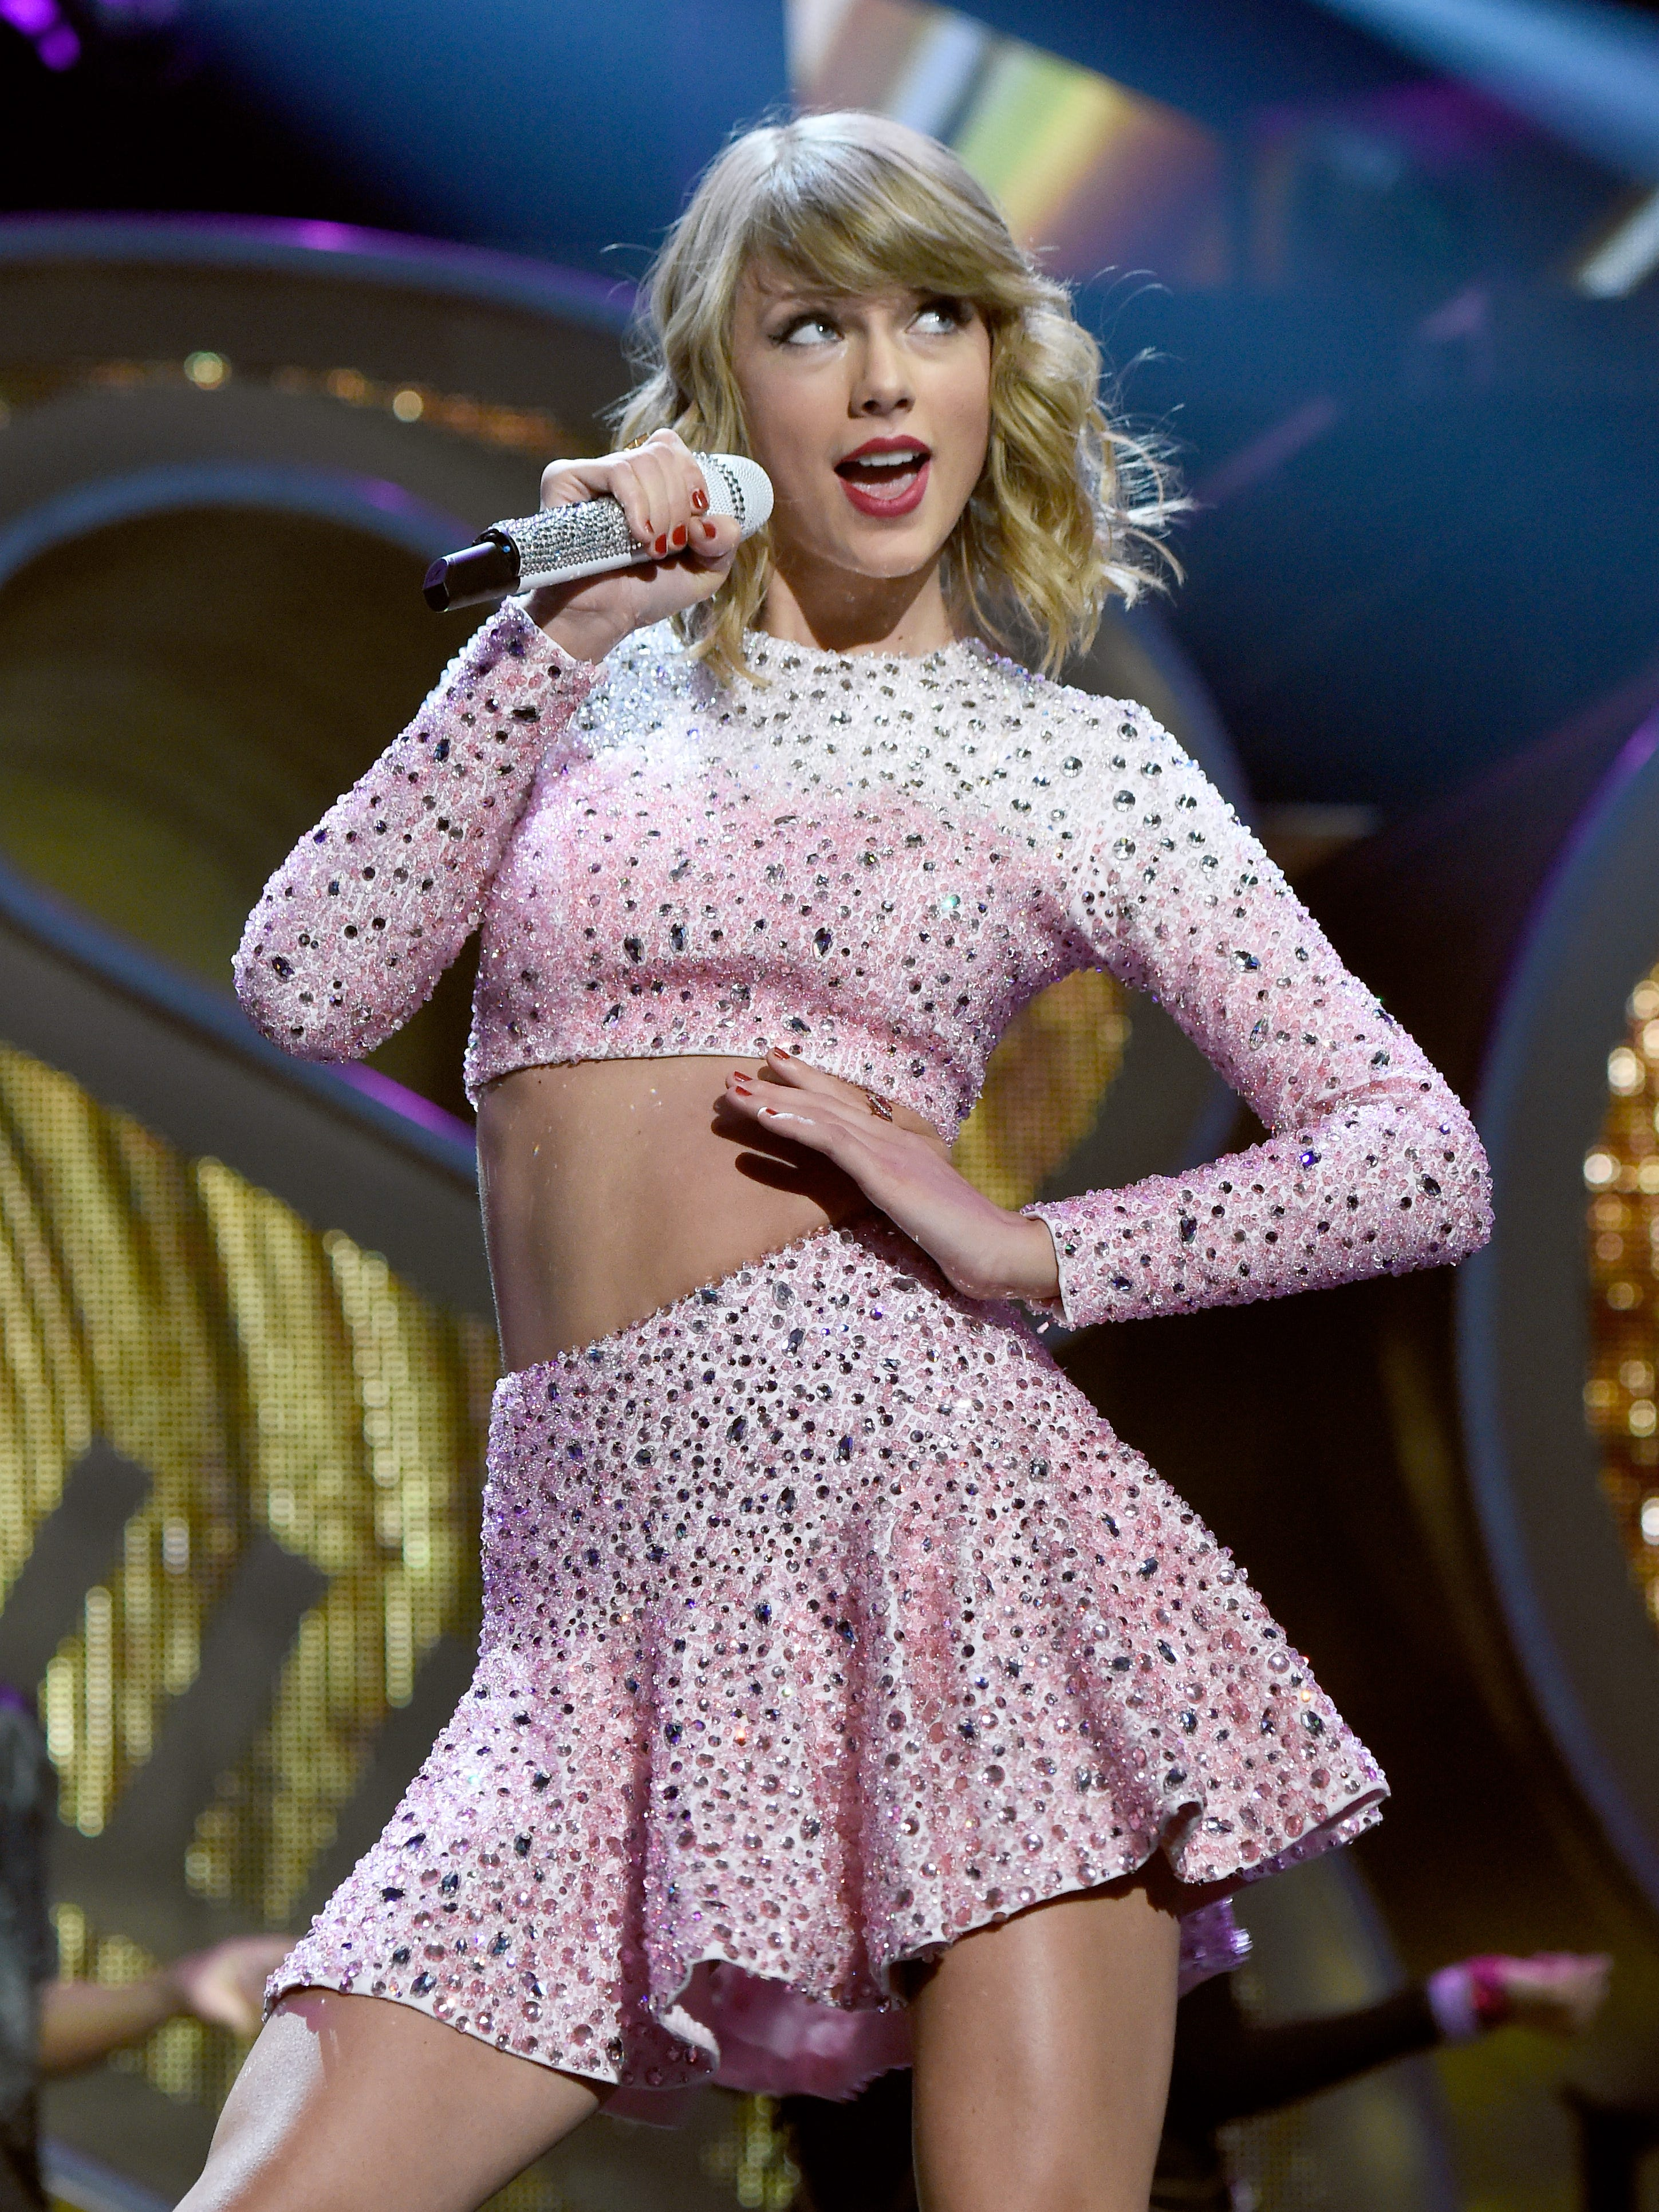 Taylor Swifta S Concert History In Des Moines